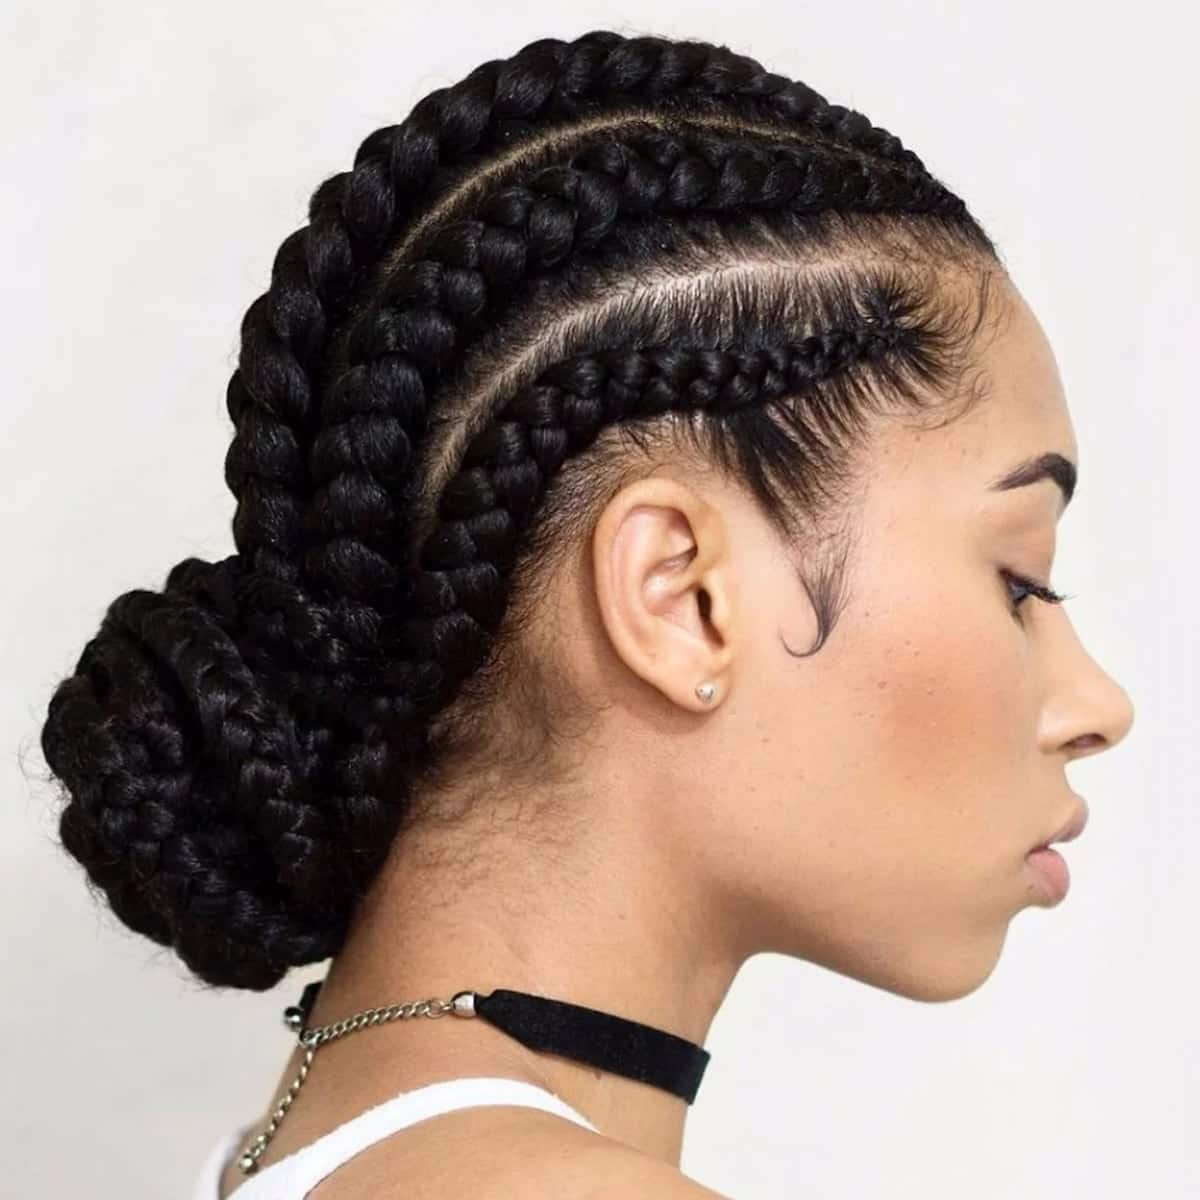 Braid Hairstyles: Types Of Braids And Braids Hairstyles In Ghana YEN.COM.GH